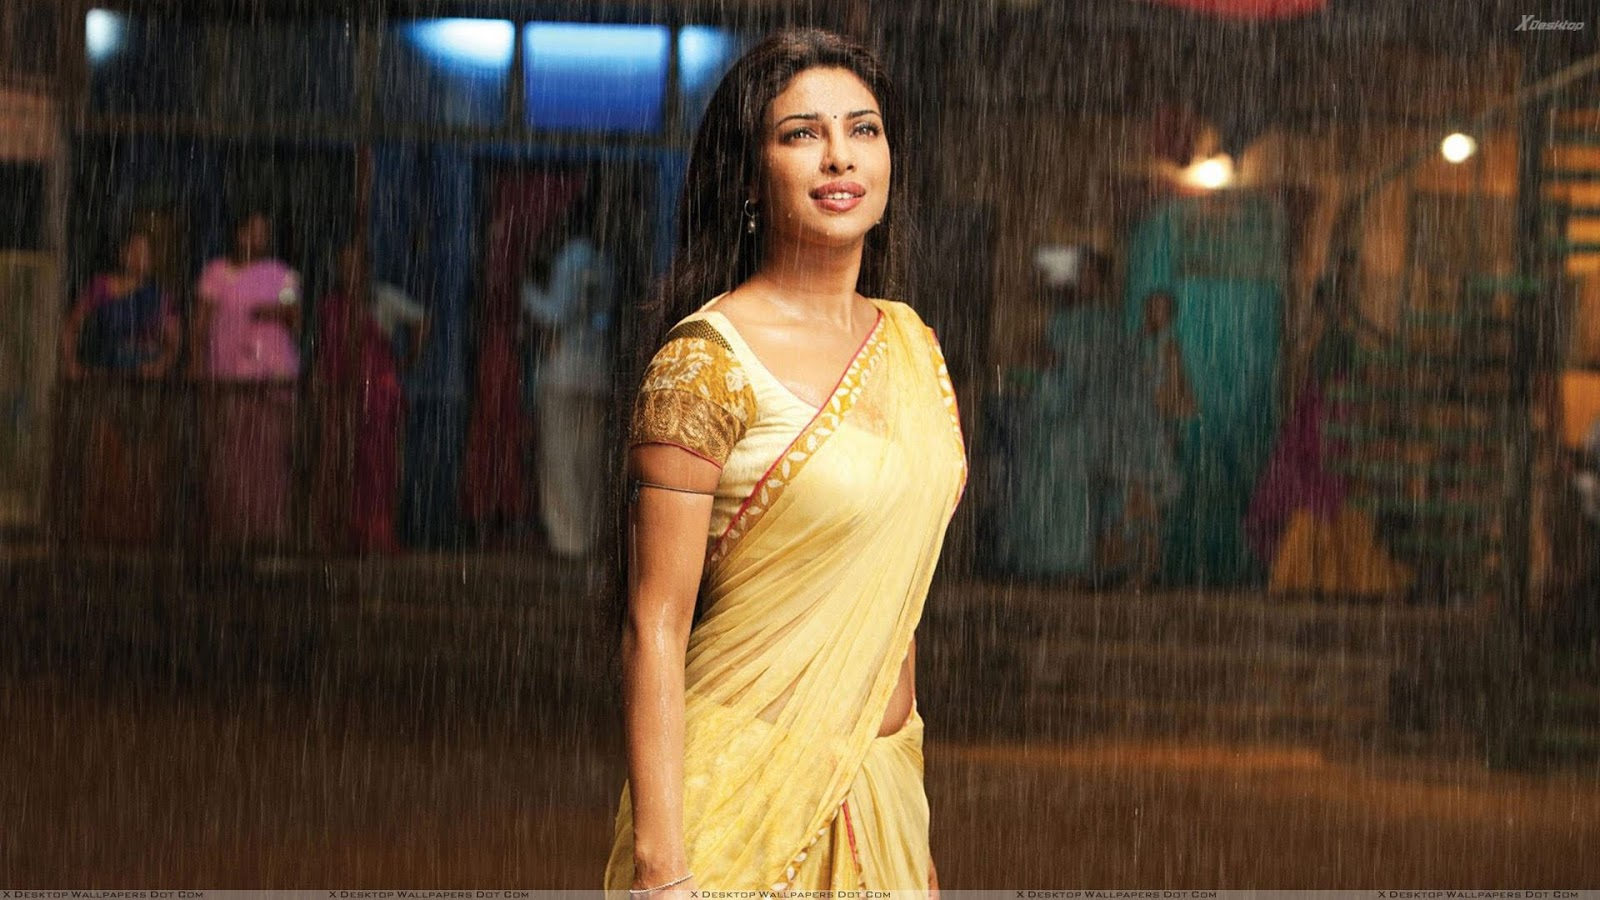 Priyanka Chopra hot in Agneepath, Priyanka Chopra in yellow saree, Priyanka Chopra in Agneepath